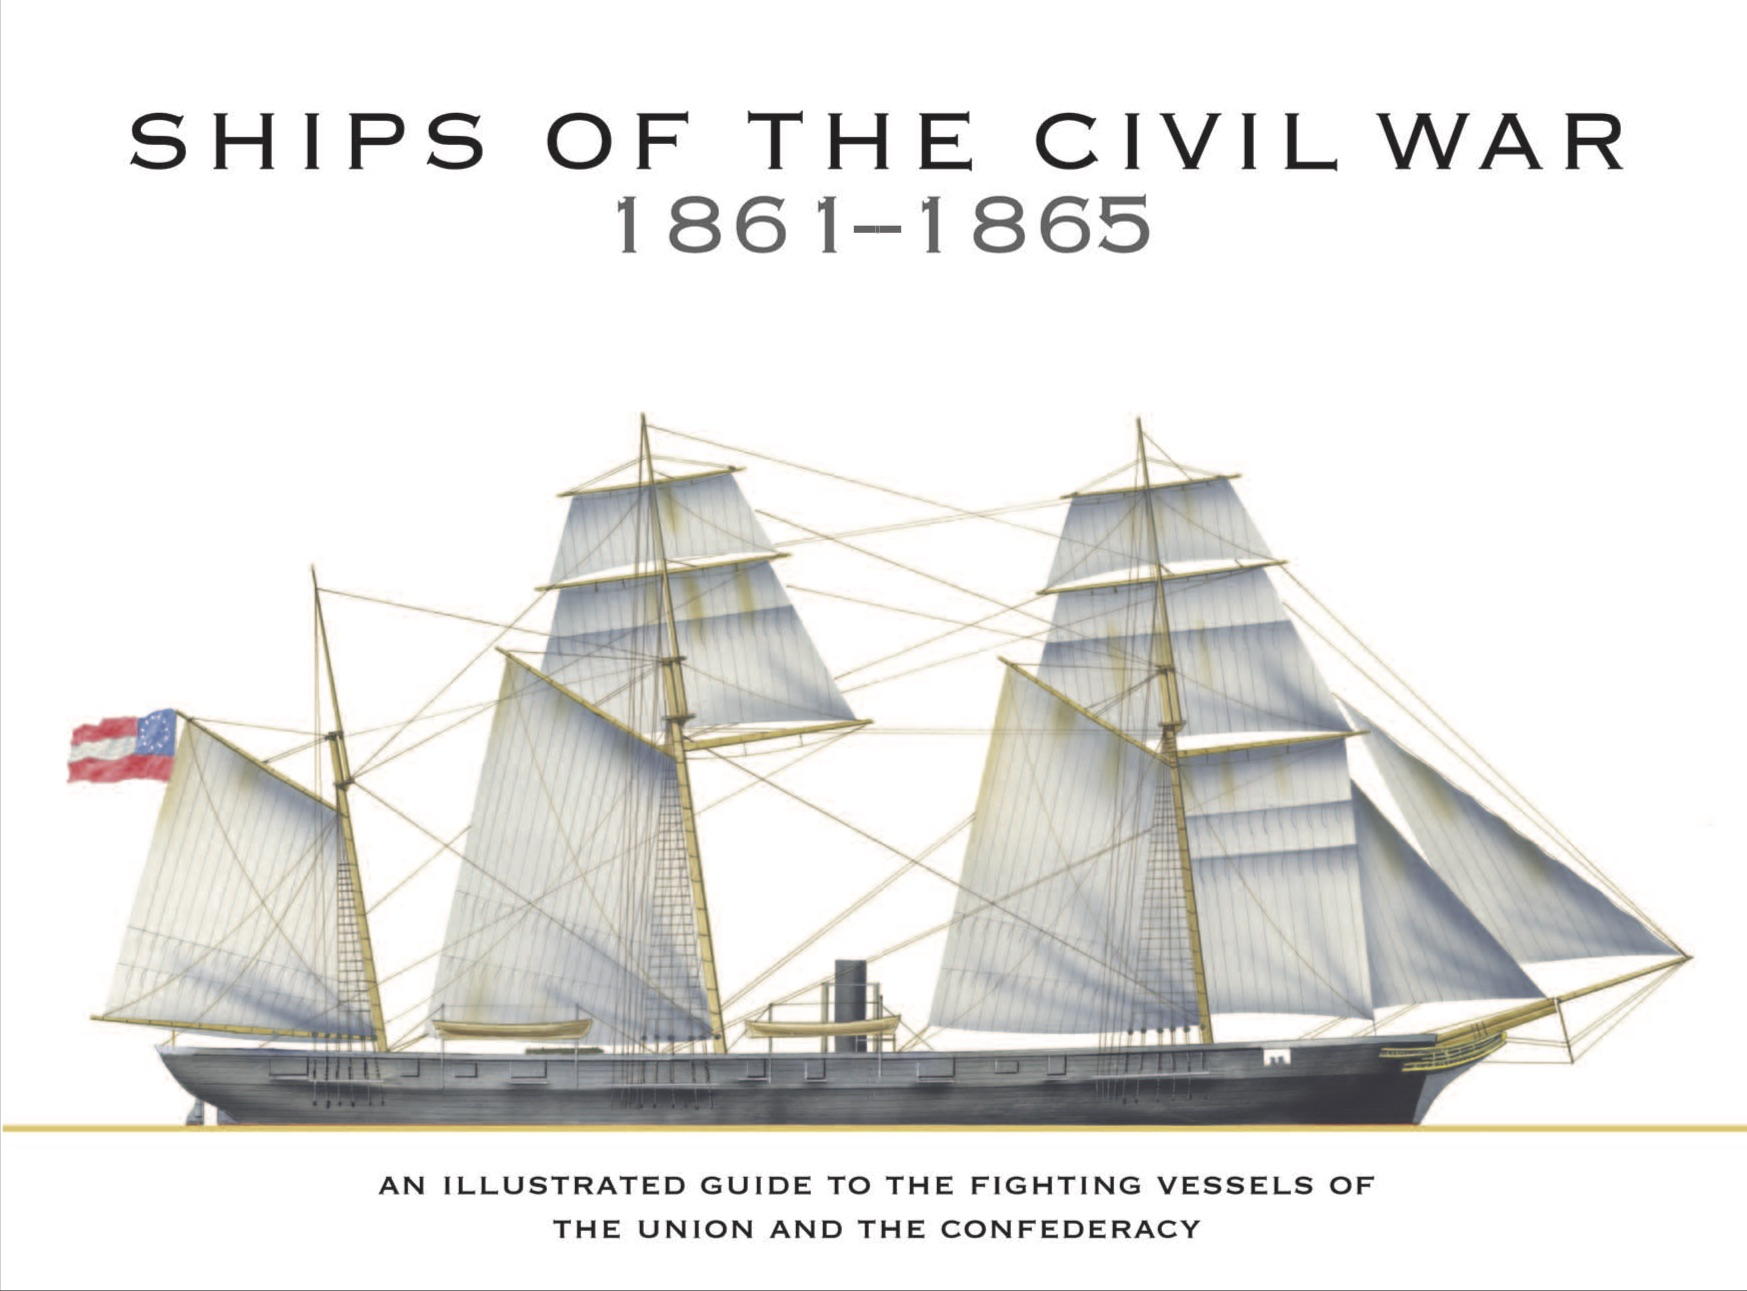 Ships of the Civil War